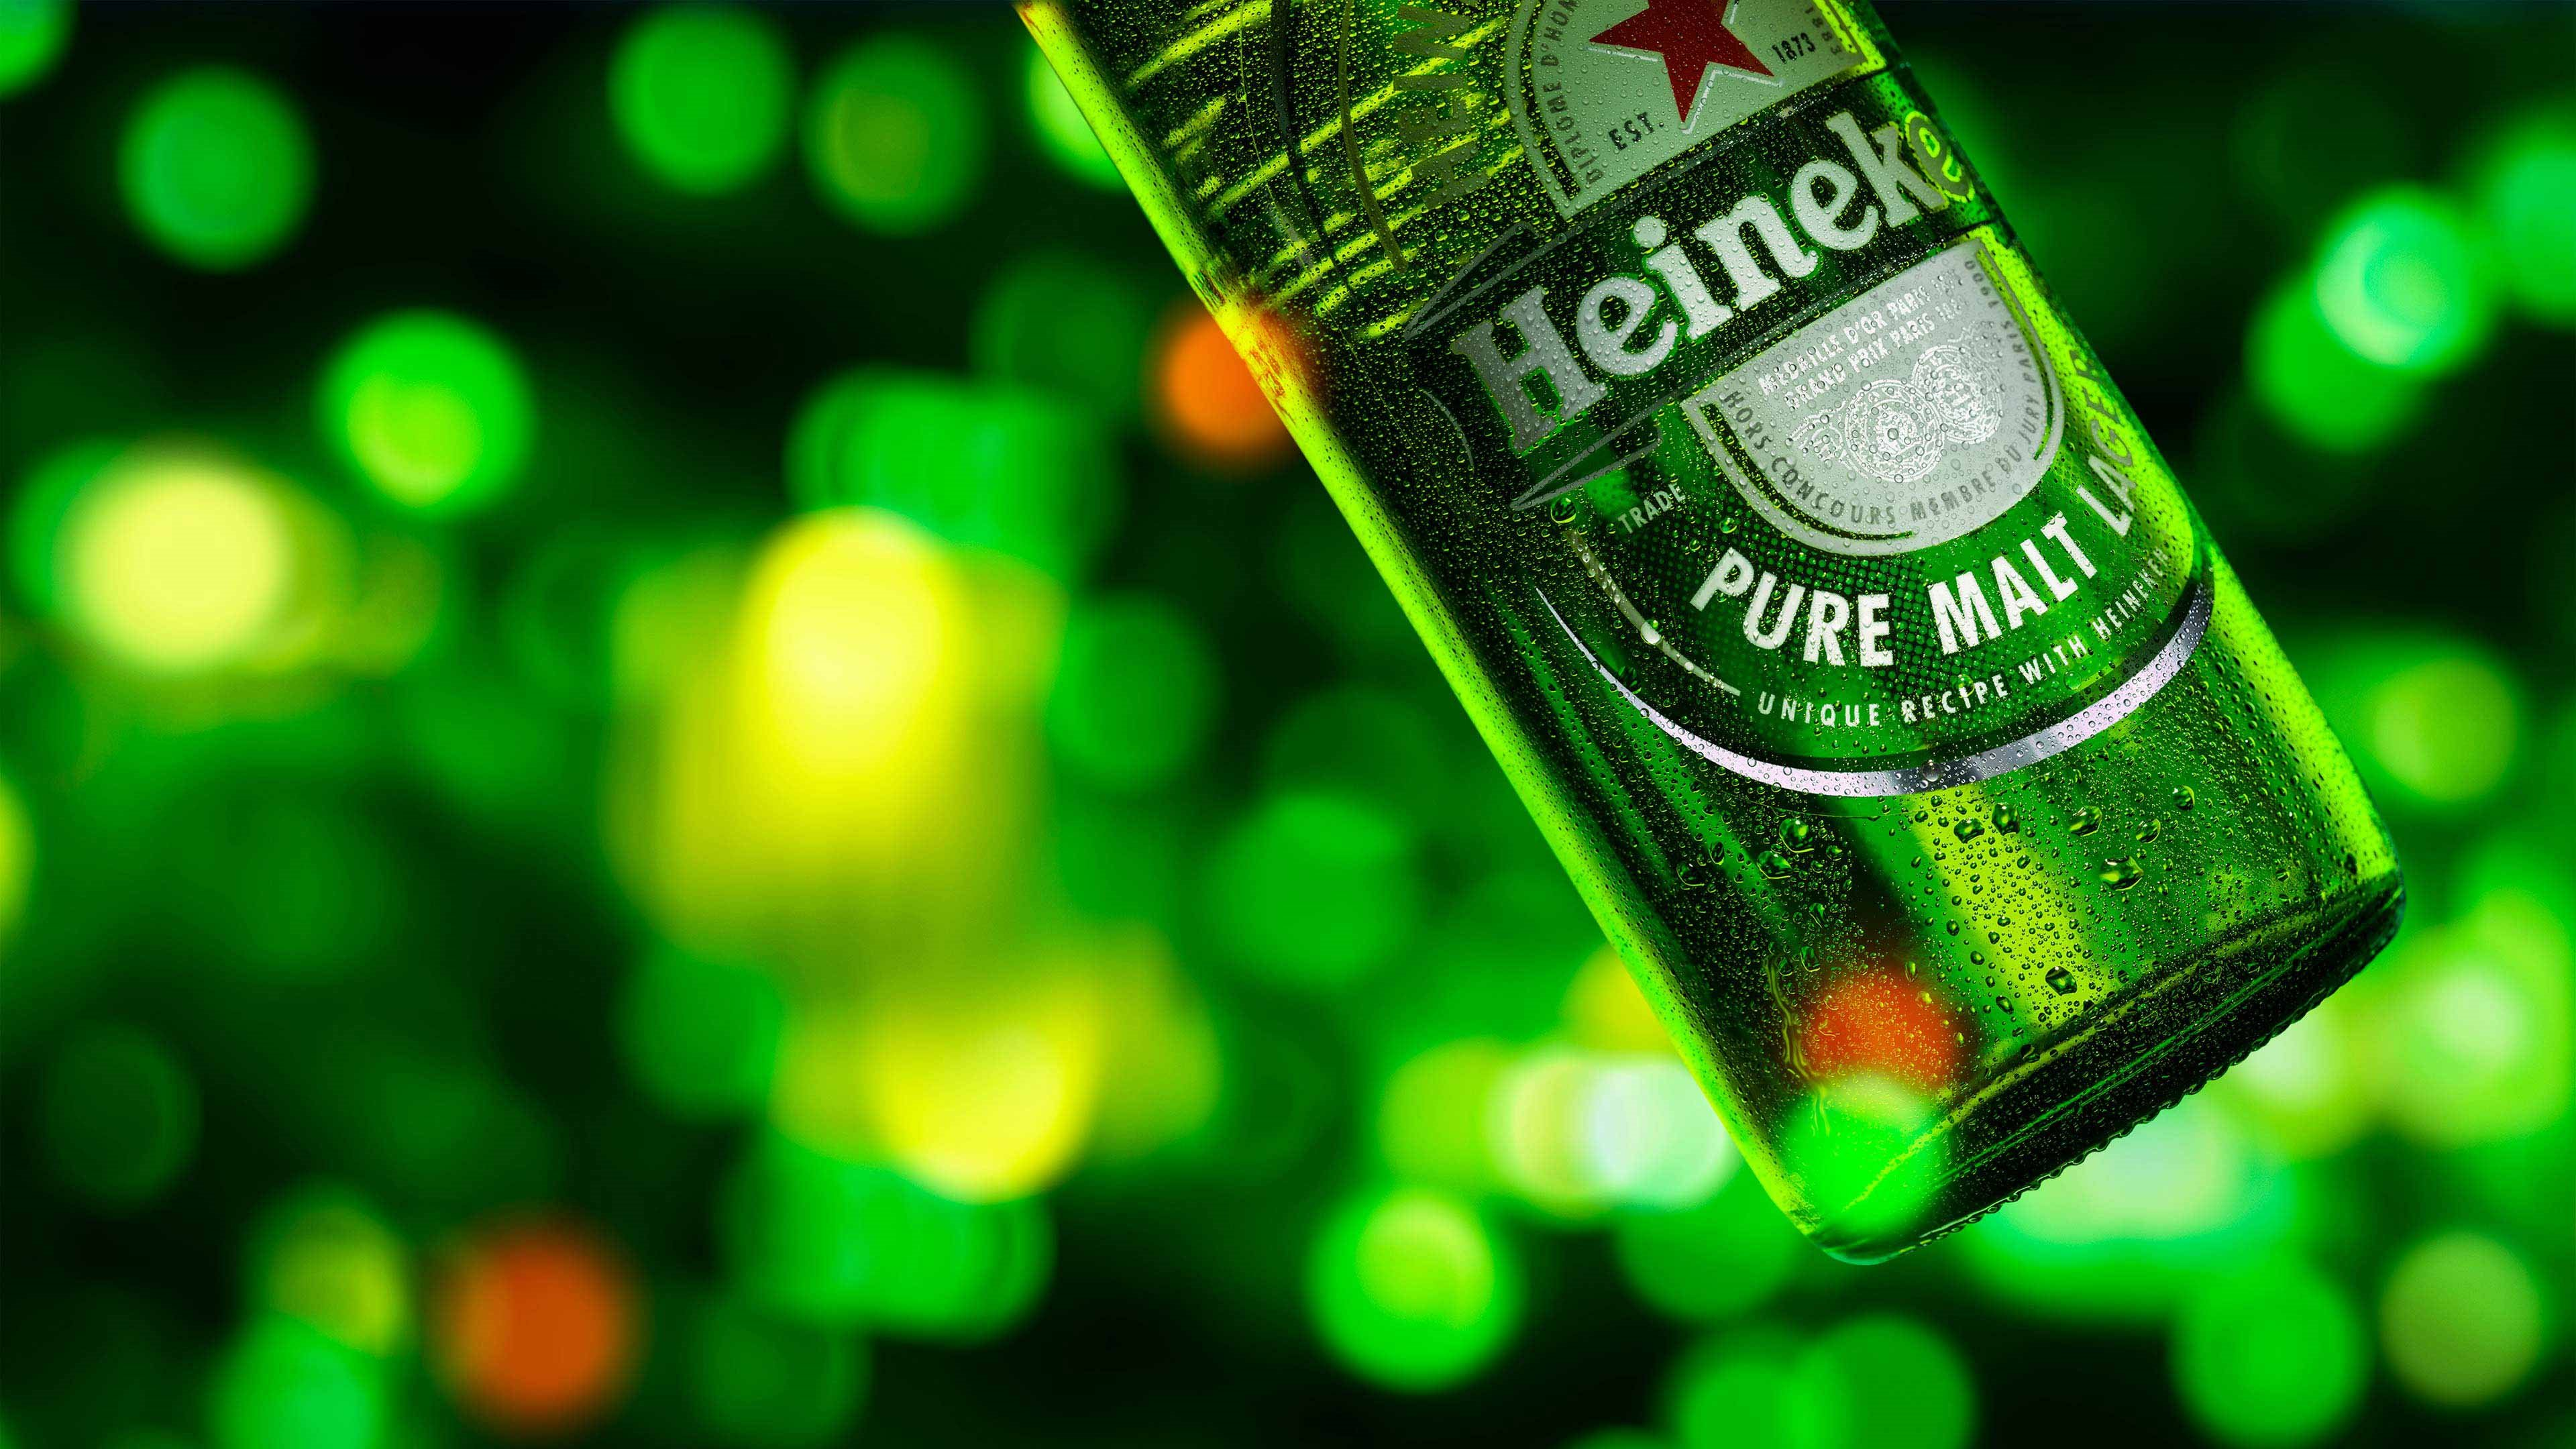 Heineken is brewed from pure malt - bottle